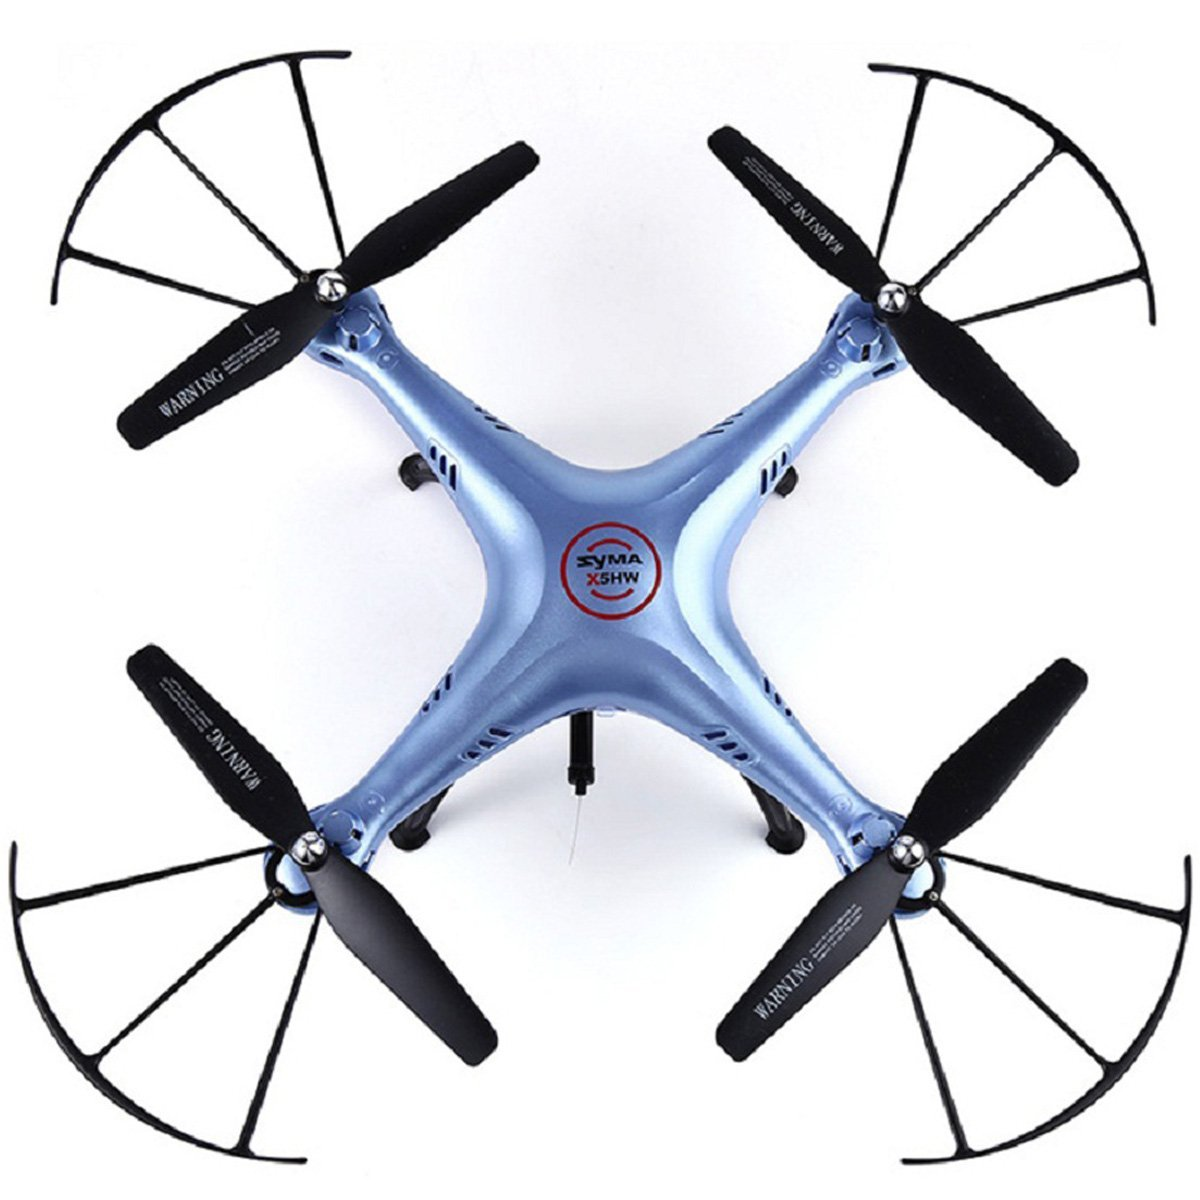 Headless Mode Quadcopter, Joso X5HW FPV 4CH RC Helicopter...